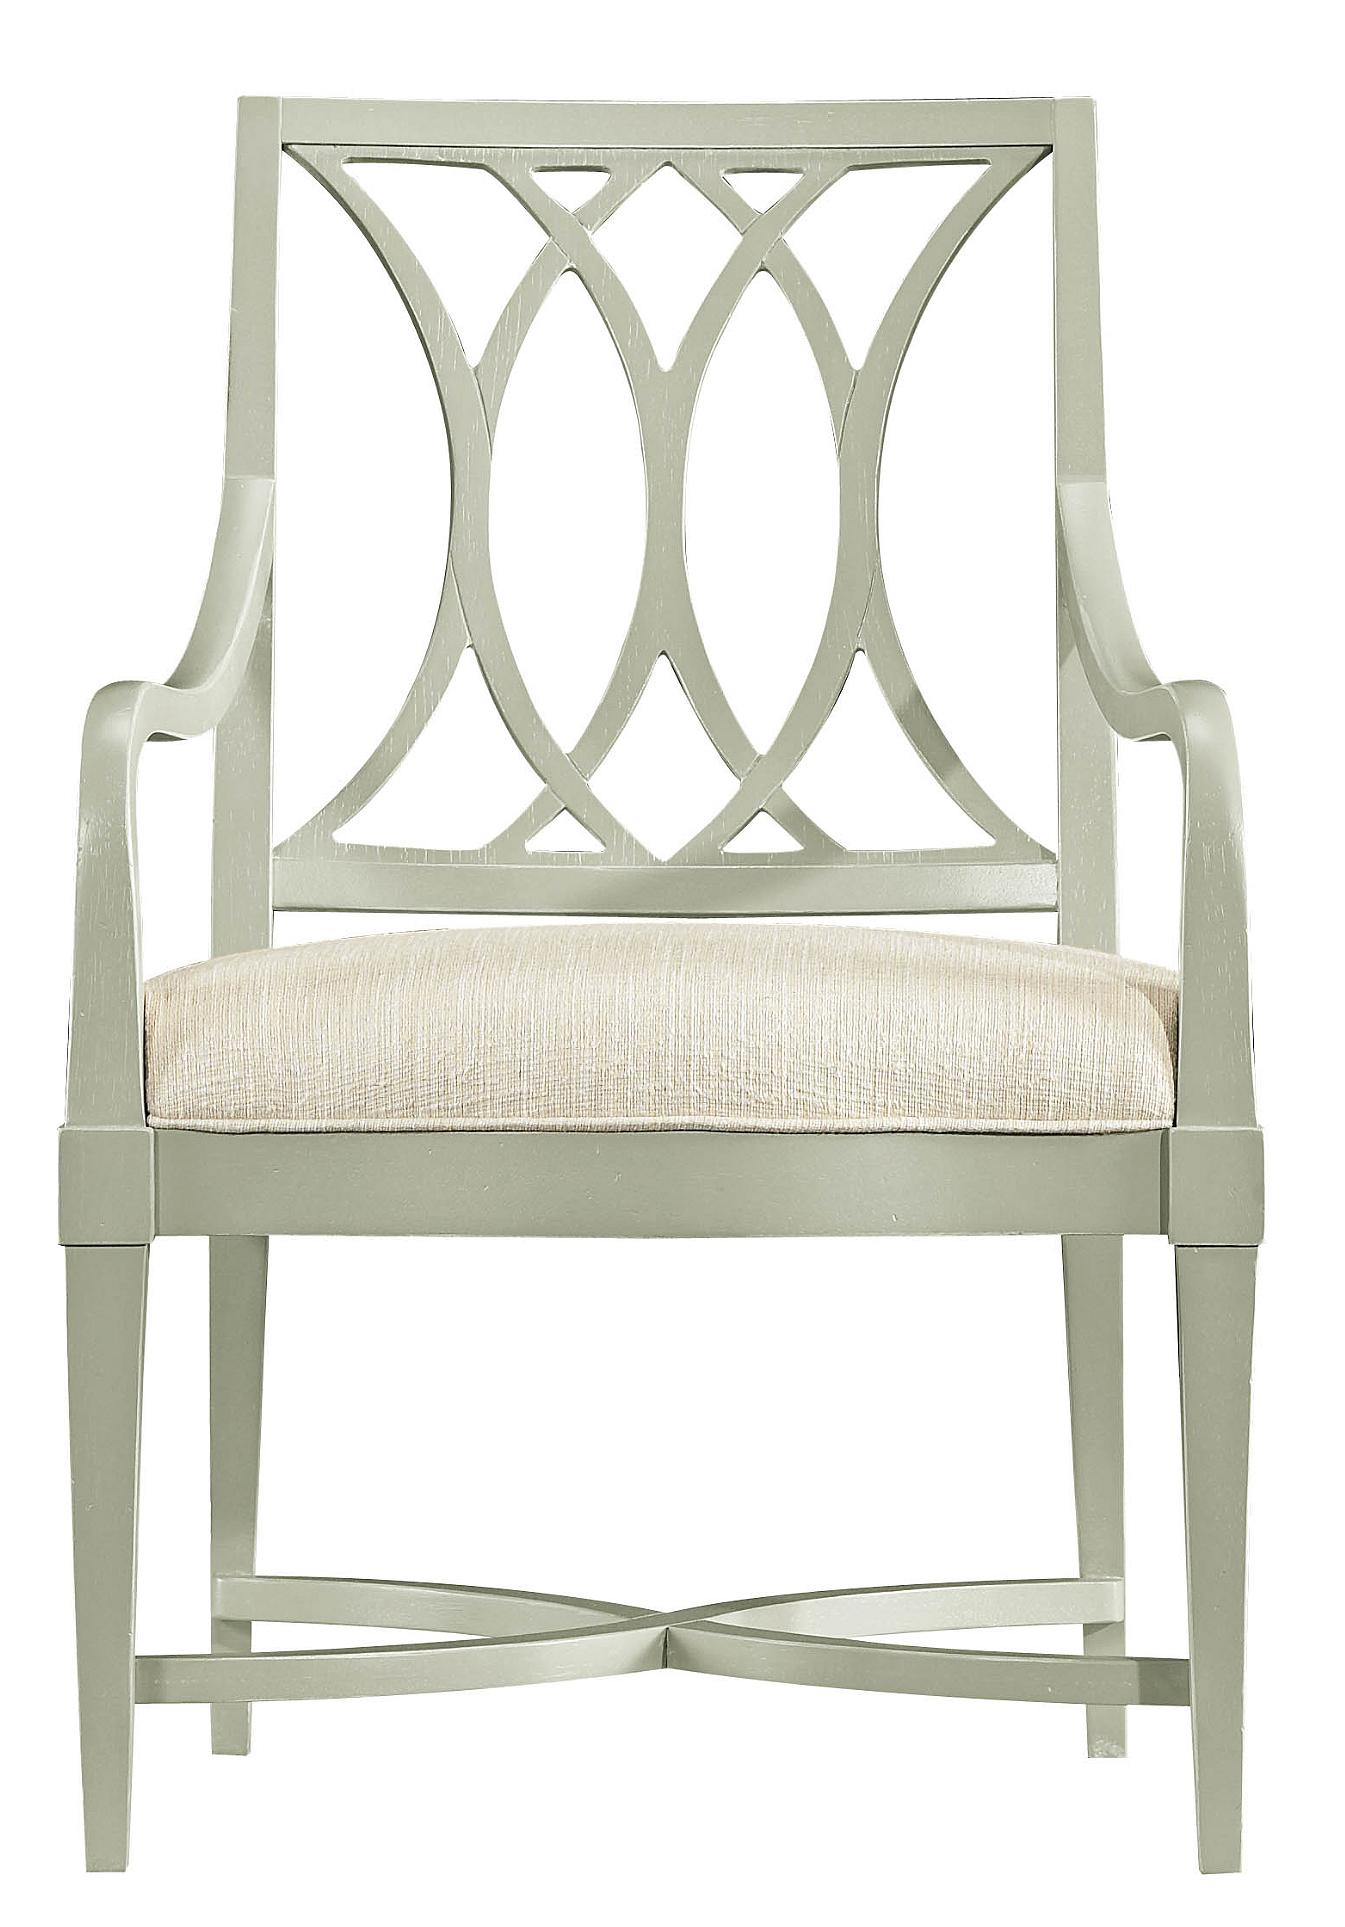 Stanley Furniture Coastal Living Resort Heritage Coast Arm Chair - Item Number: 062-E1-70